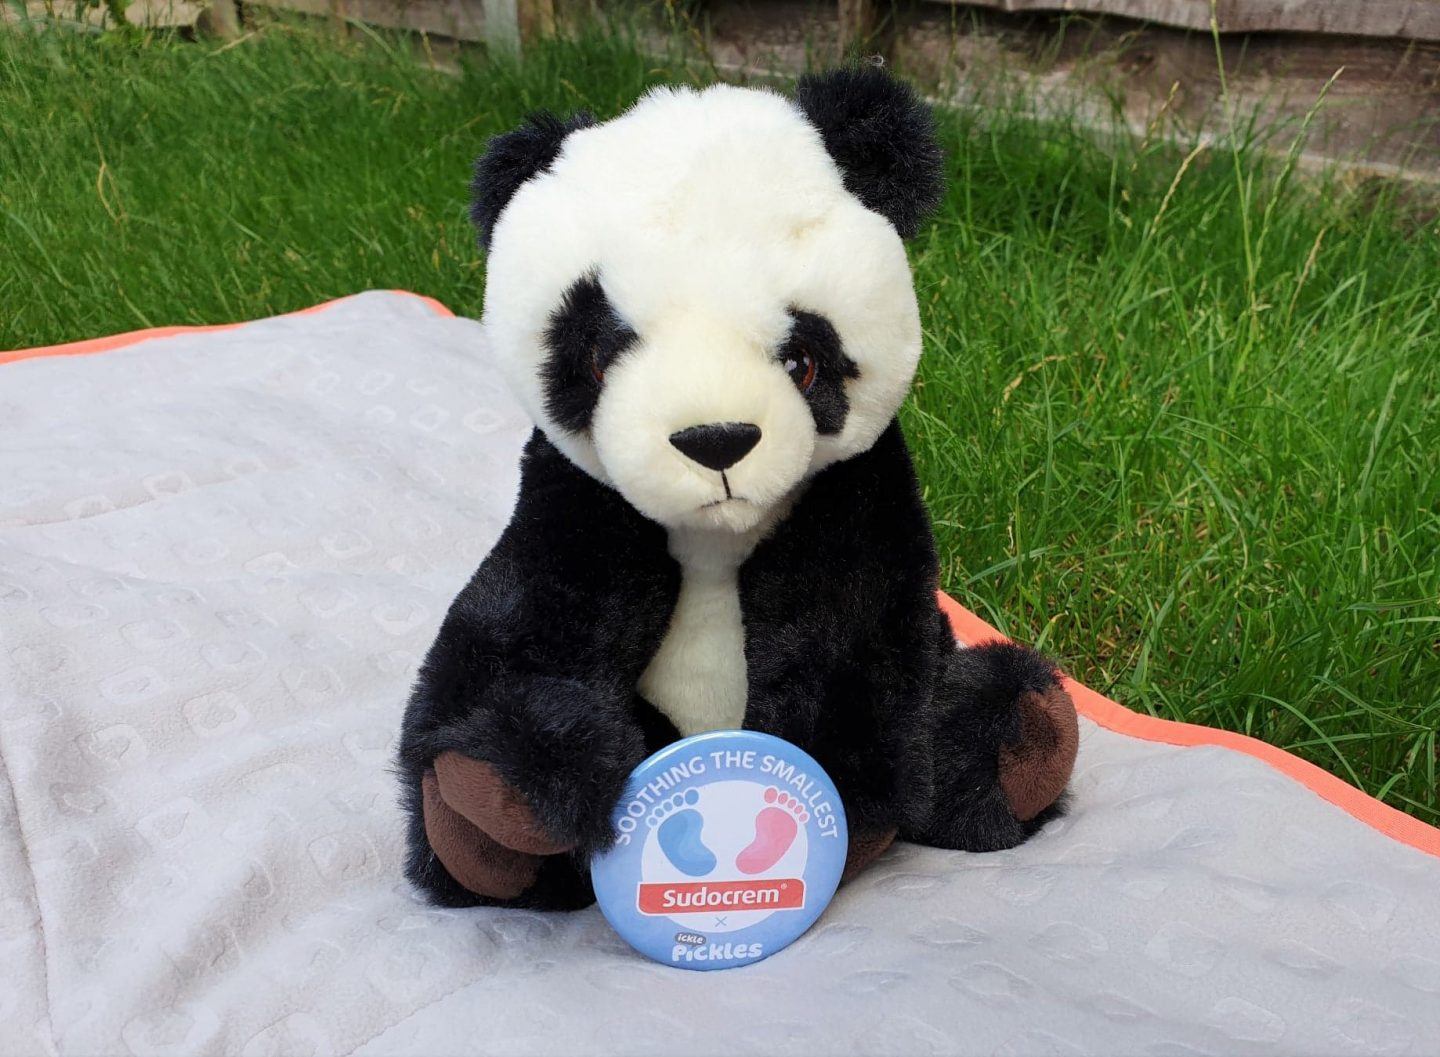 Sudocrem x Ickle Pickles Soothing the Smallest panda